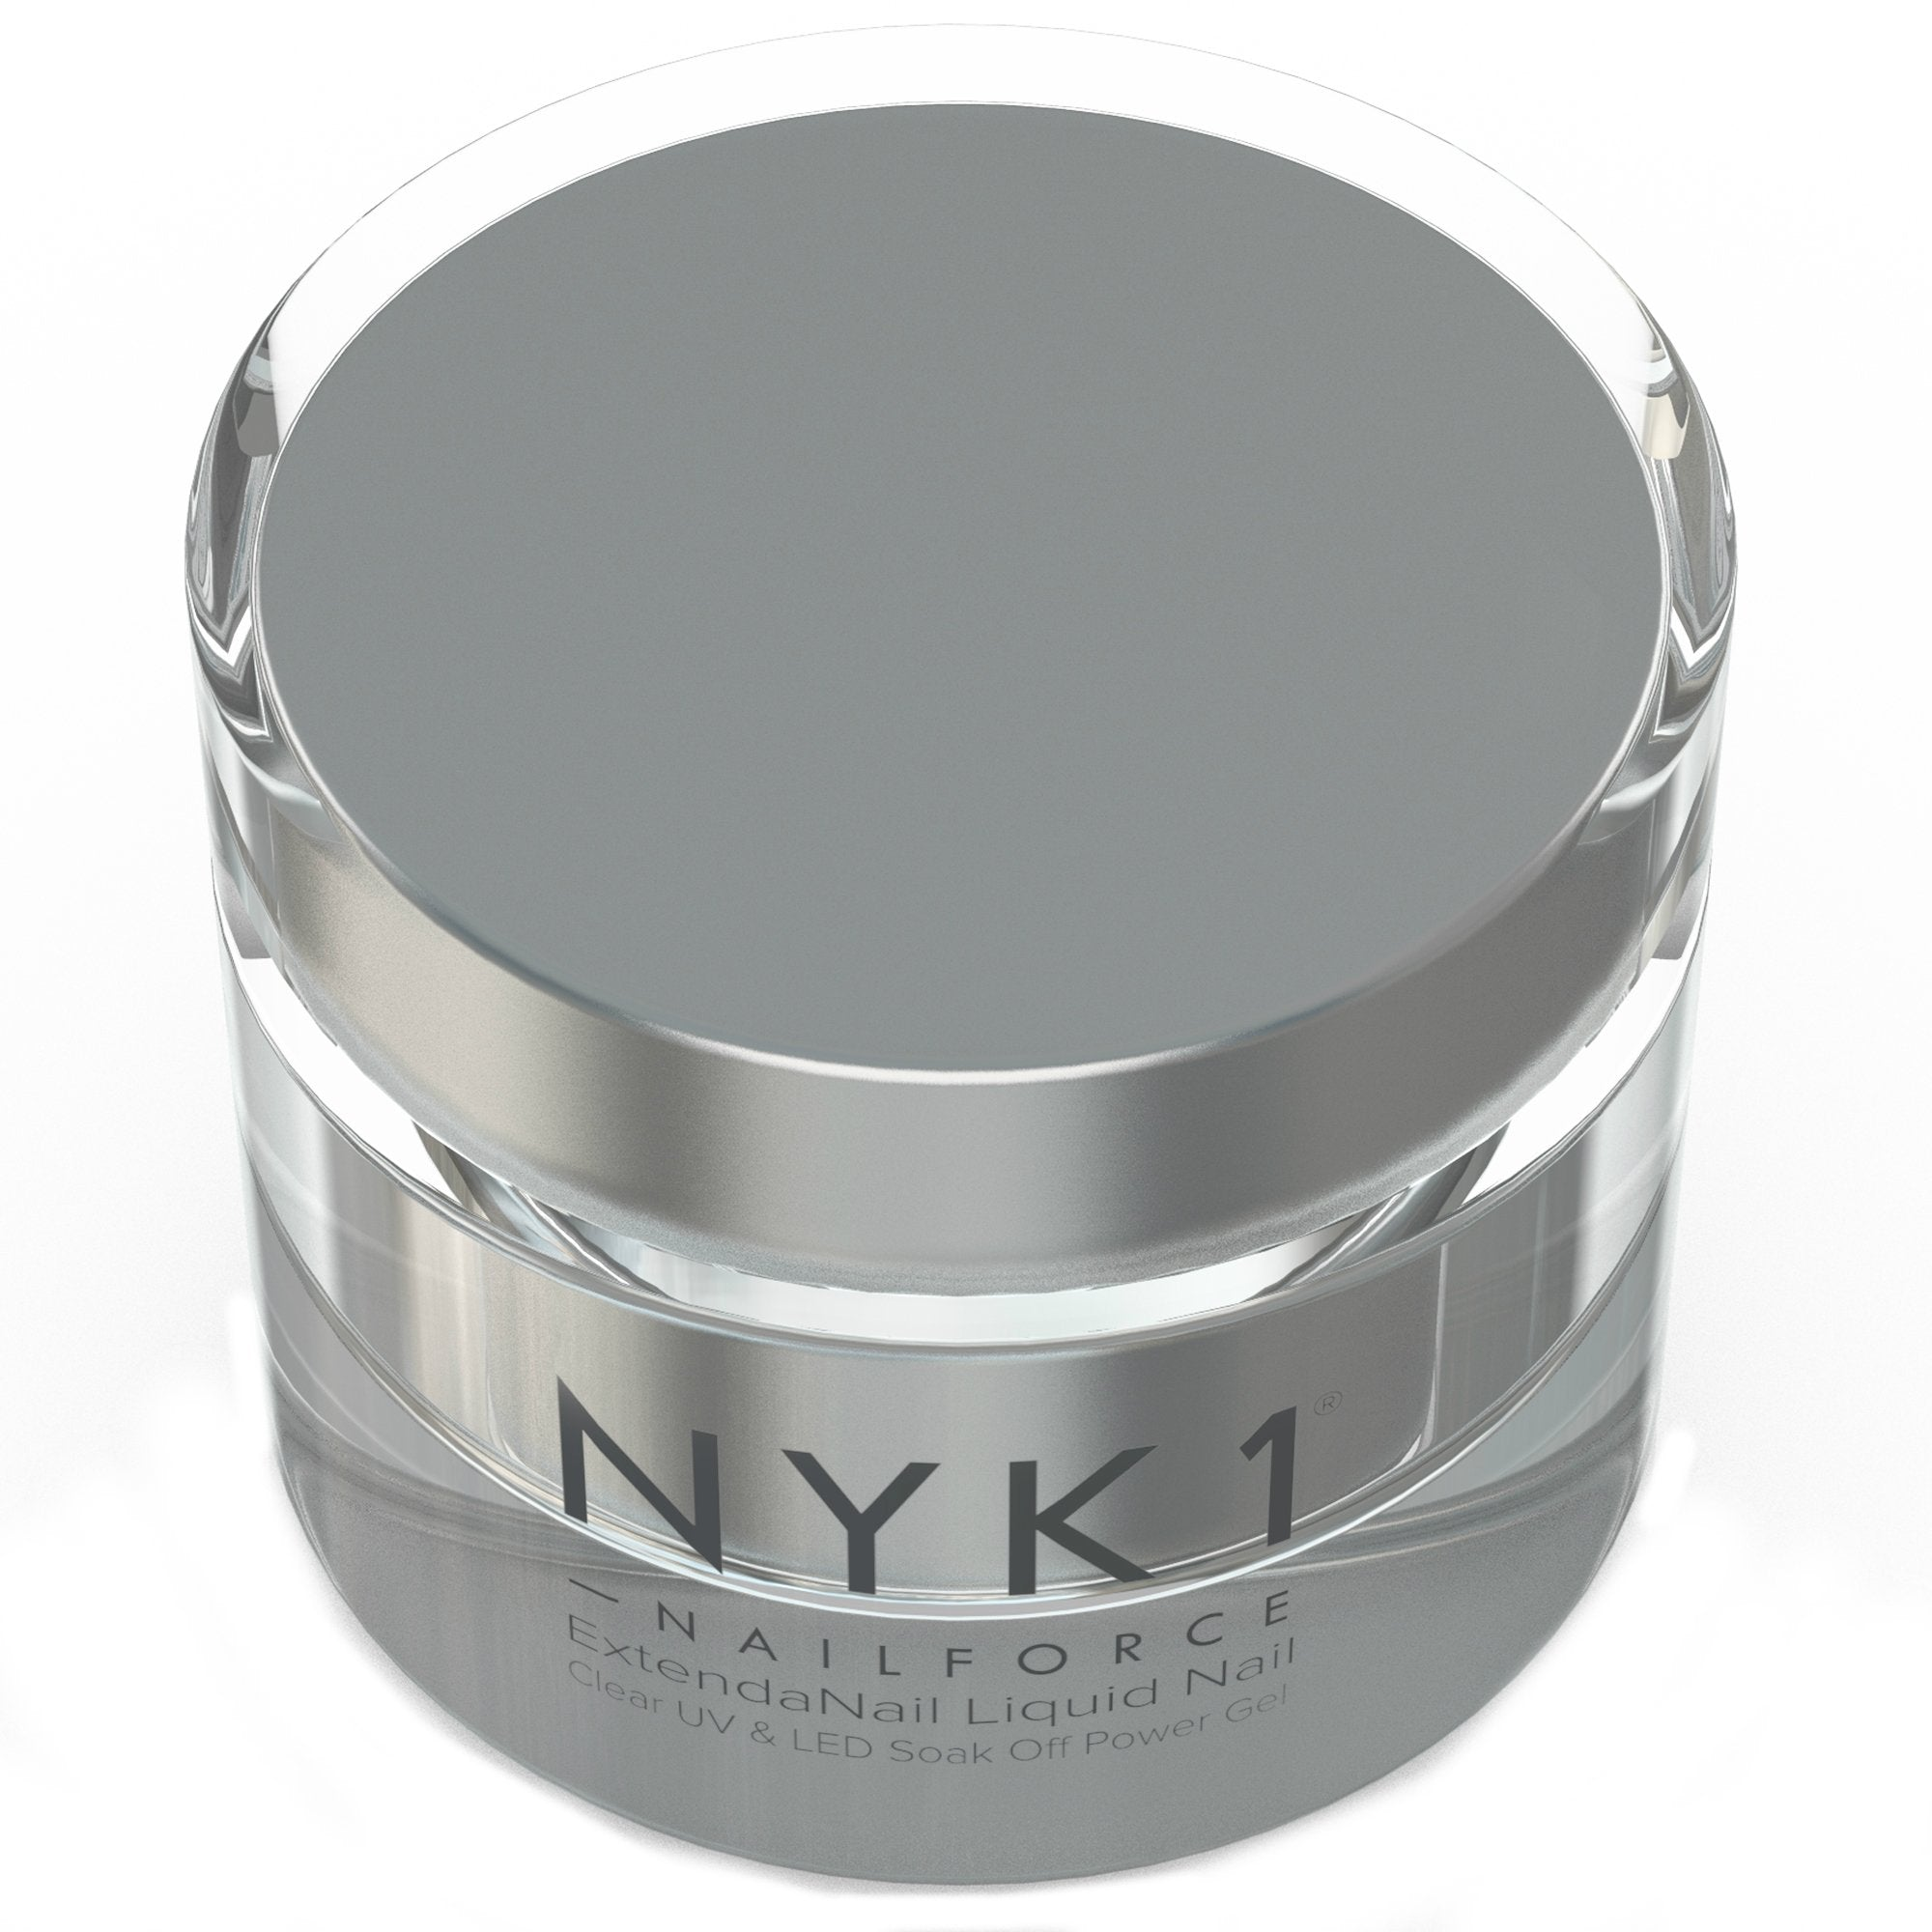 NYK1 Clear Nail Builder Gel Poly Fiber gel